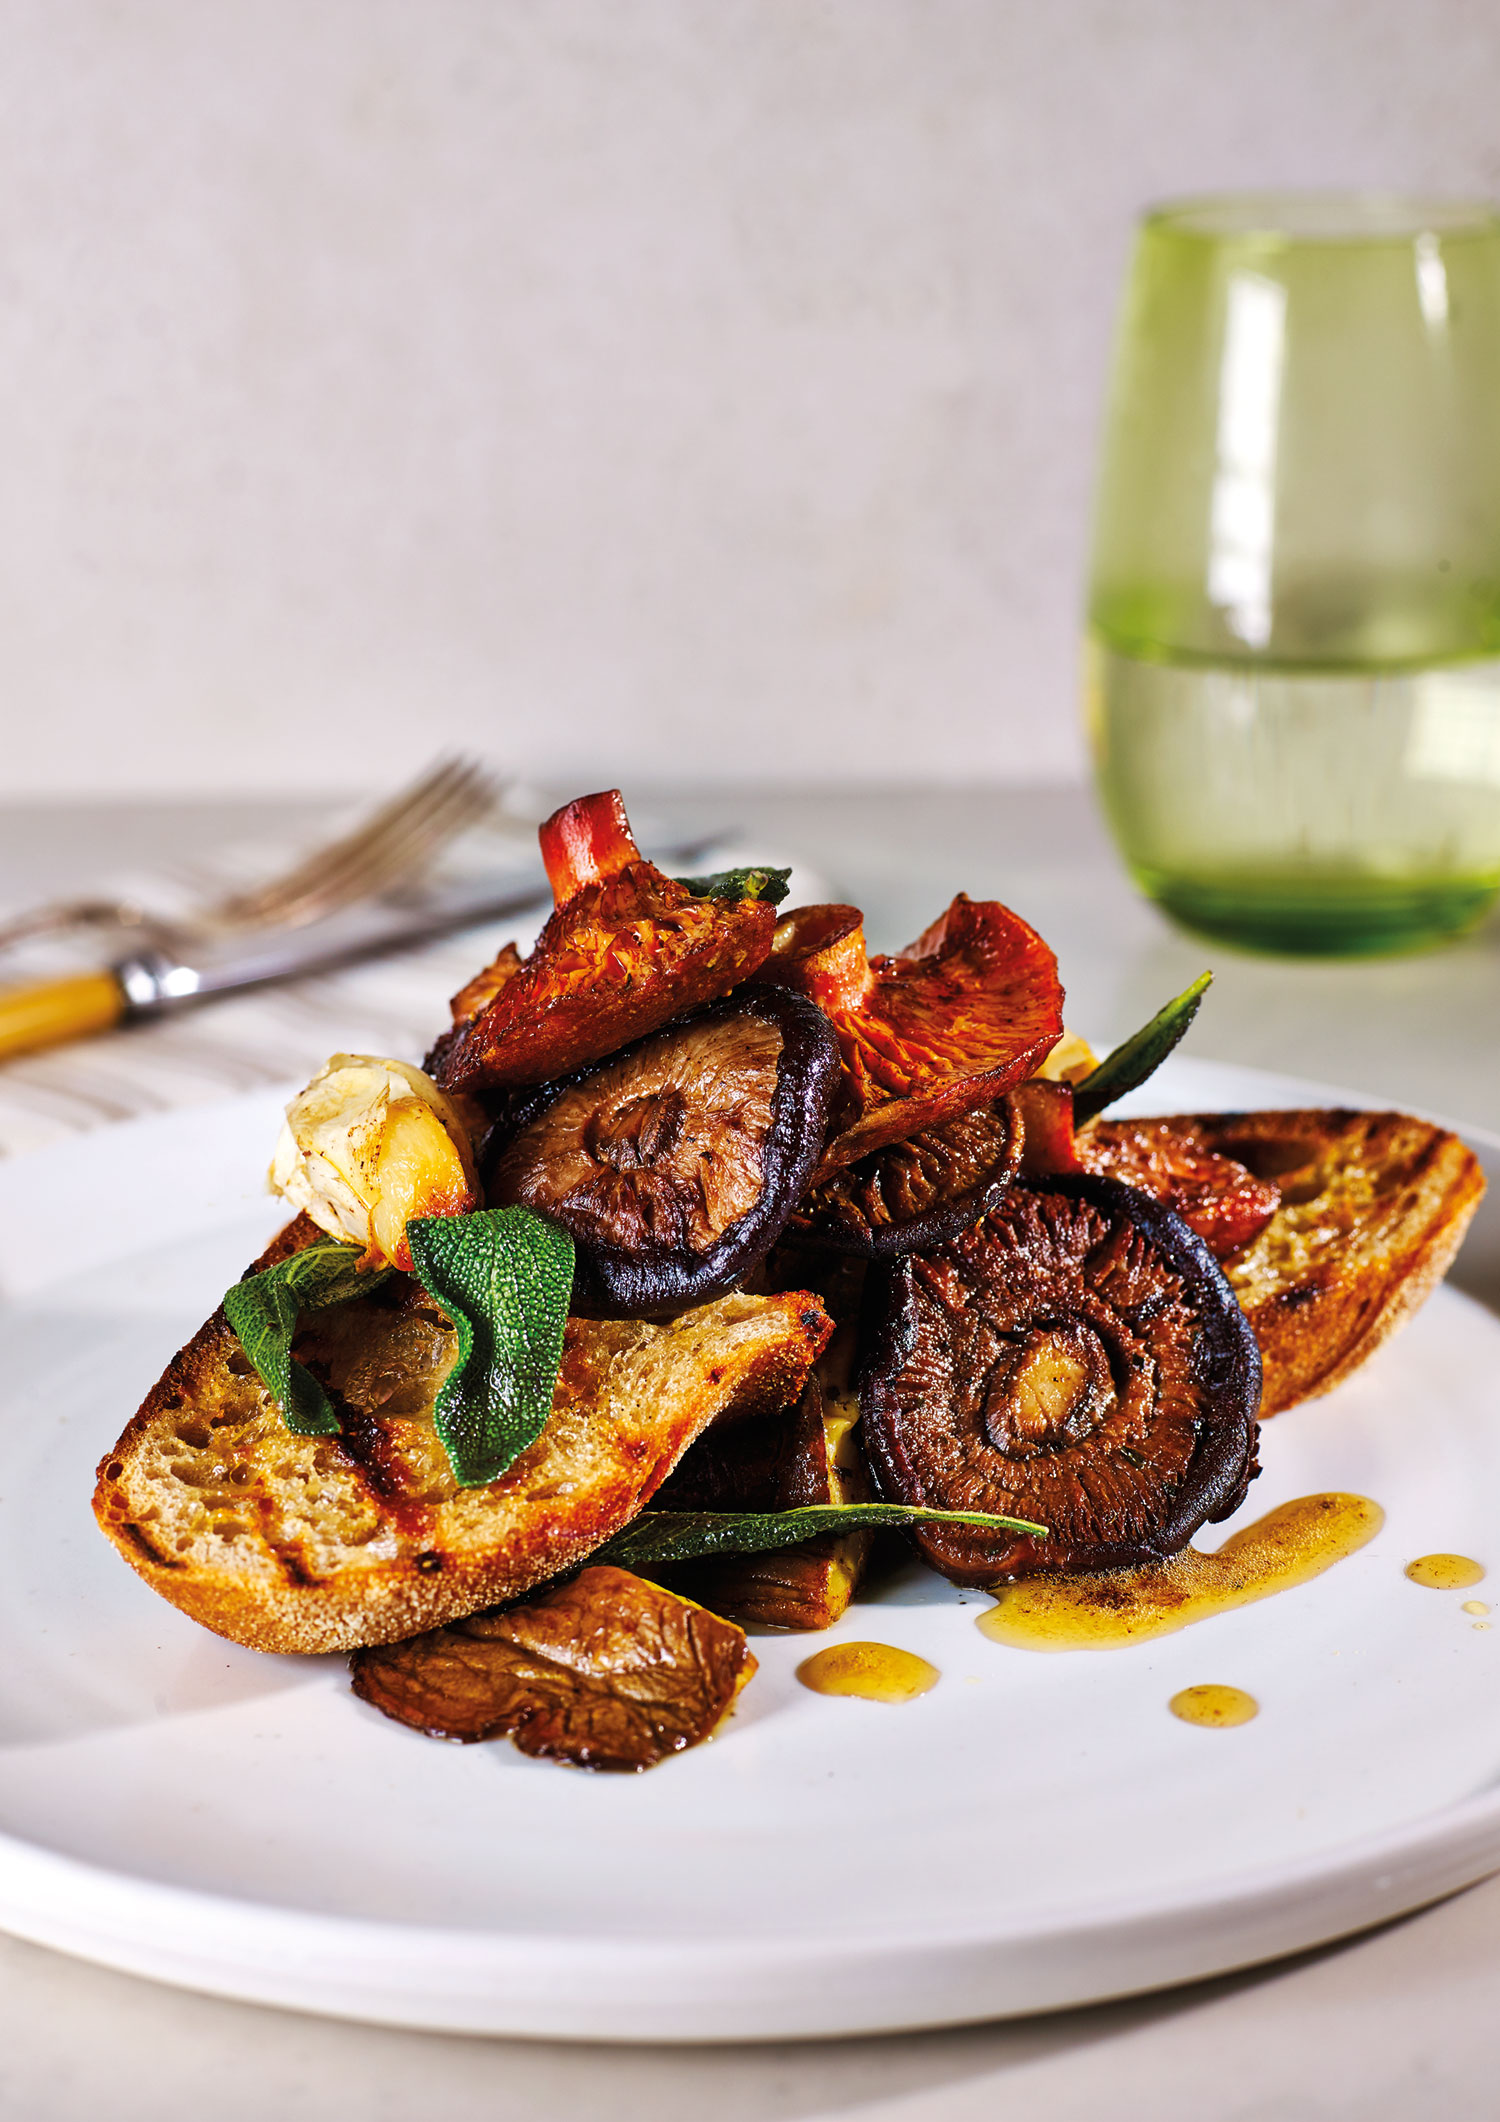 Mushrooms on Toast with roasted garlic and Lemon Sage Butter